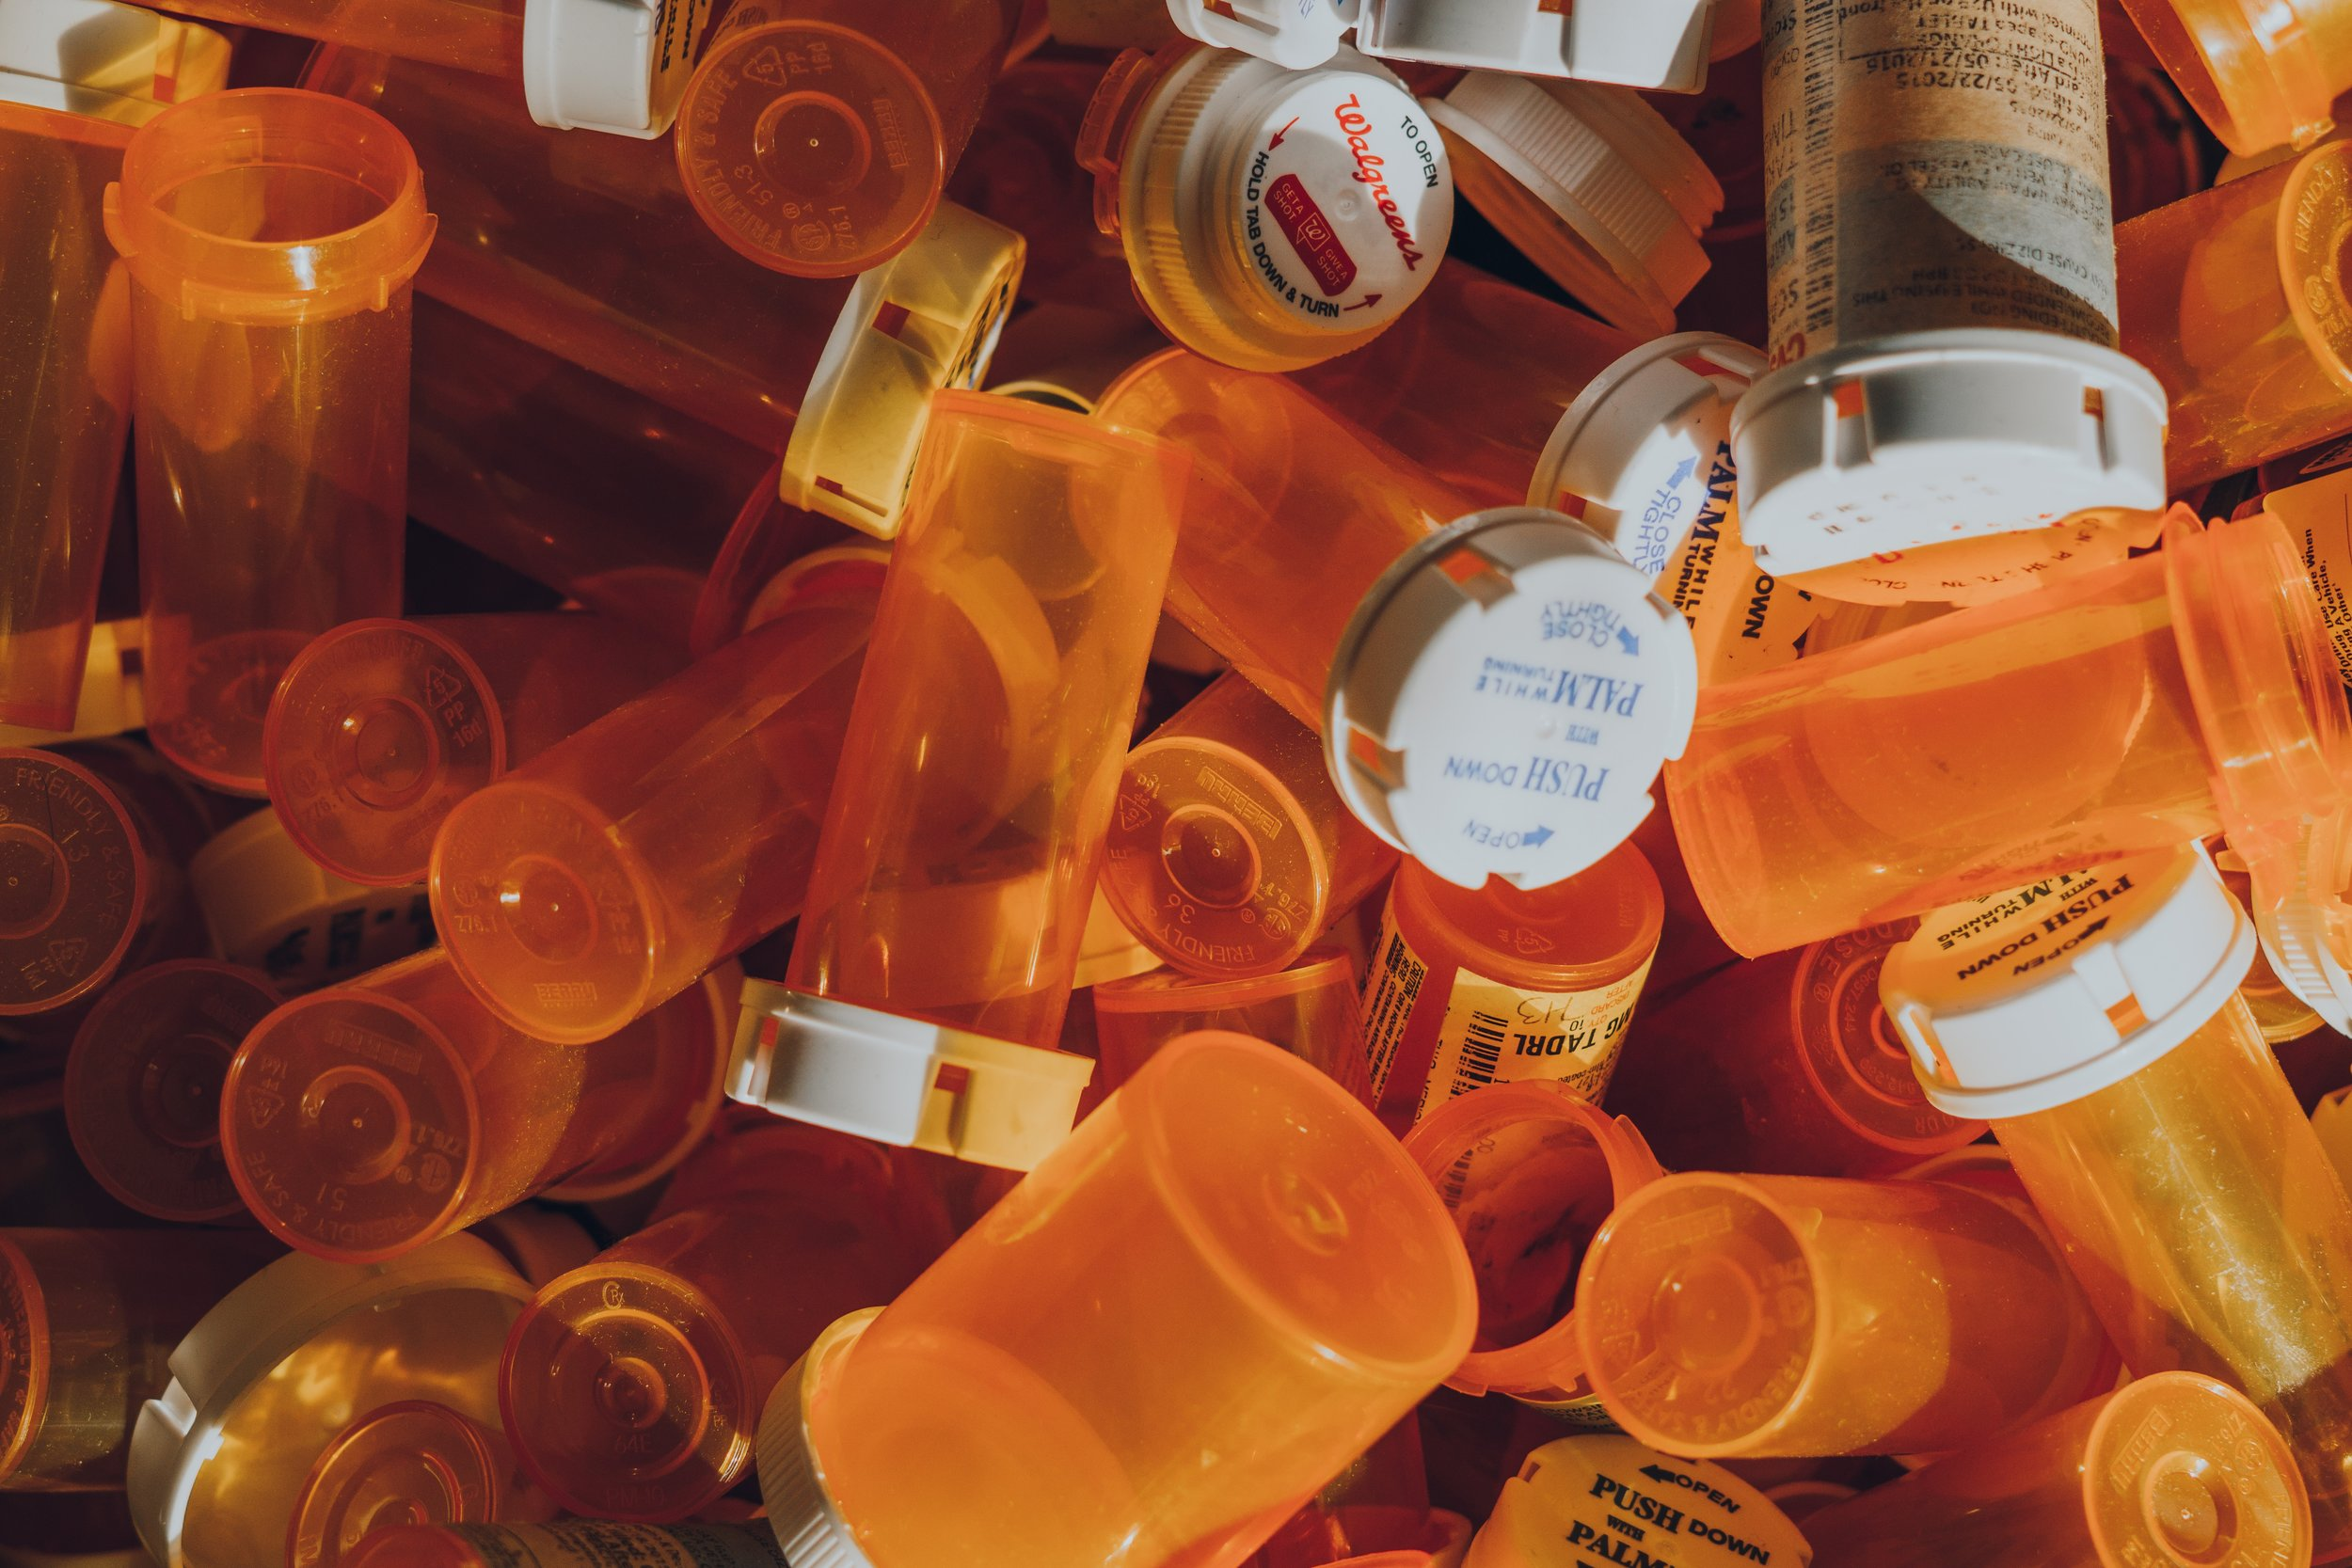 sharps and medication disposal - Discard your medications and sharps/needles safely by dropping them off at the pharmacy. We will exchange your container for a new one at no charge.